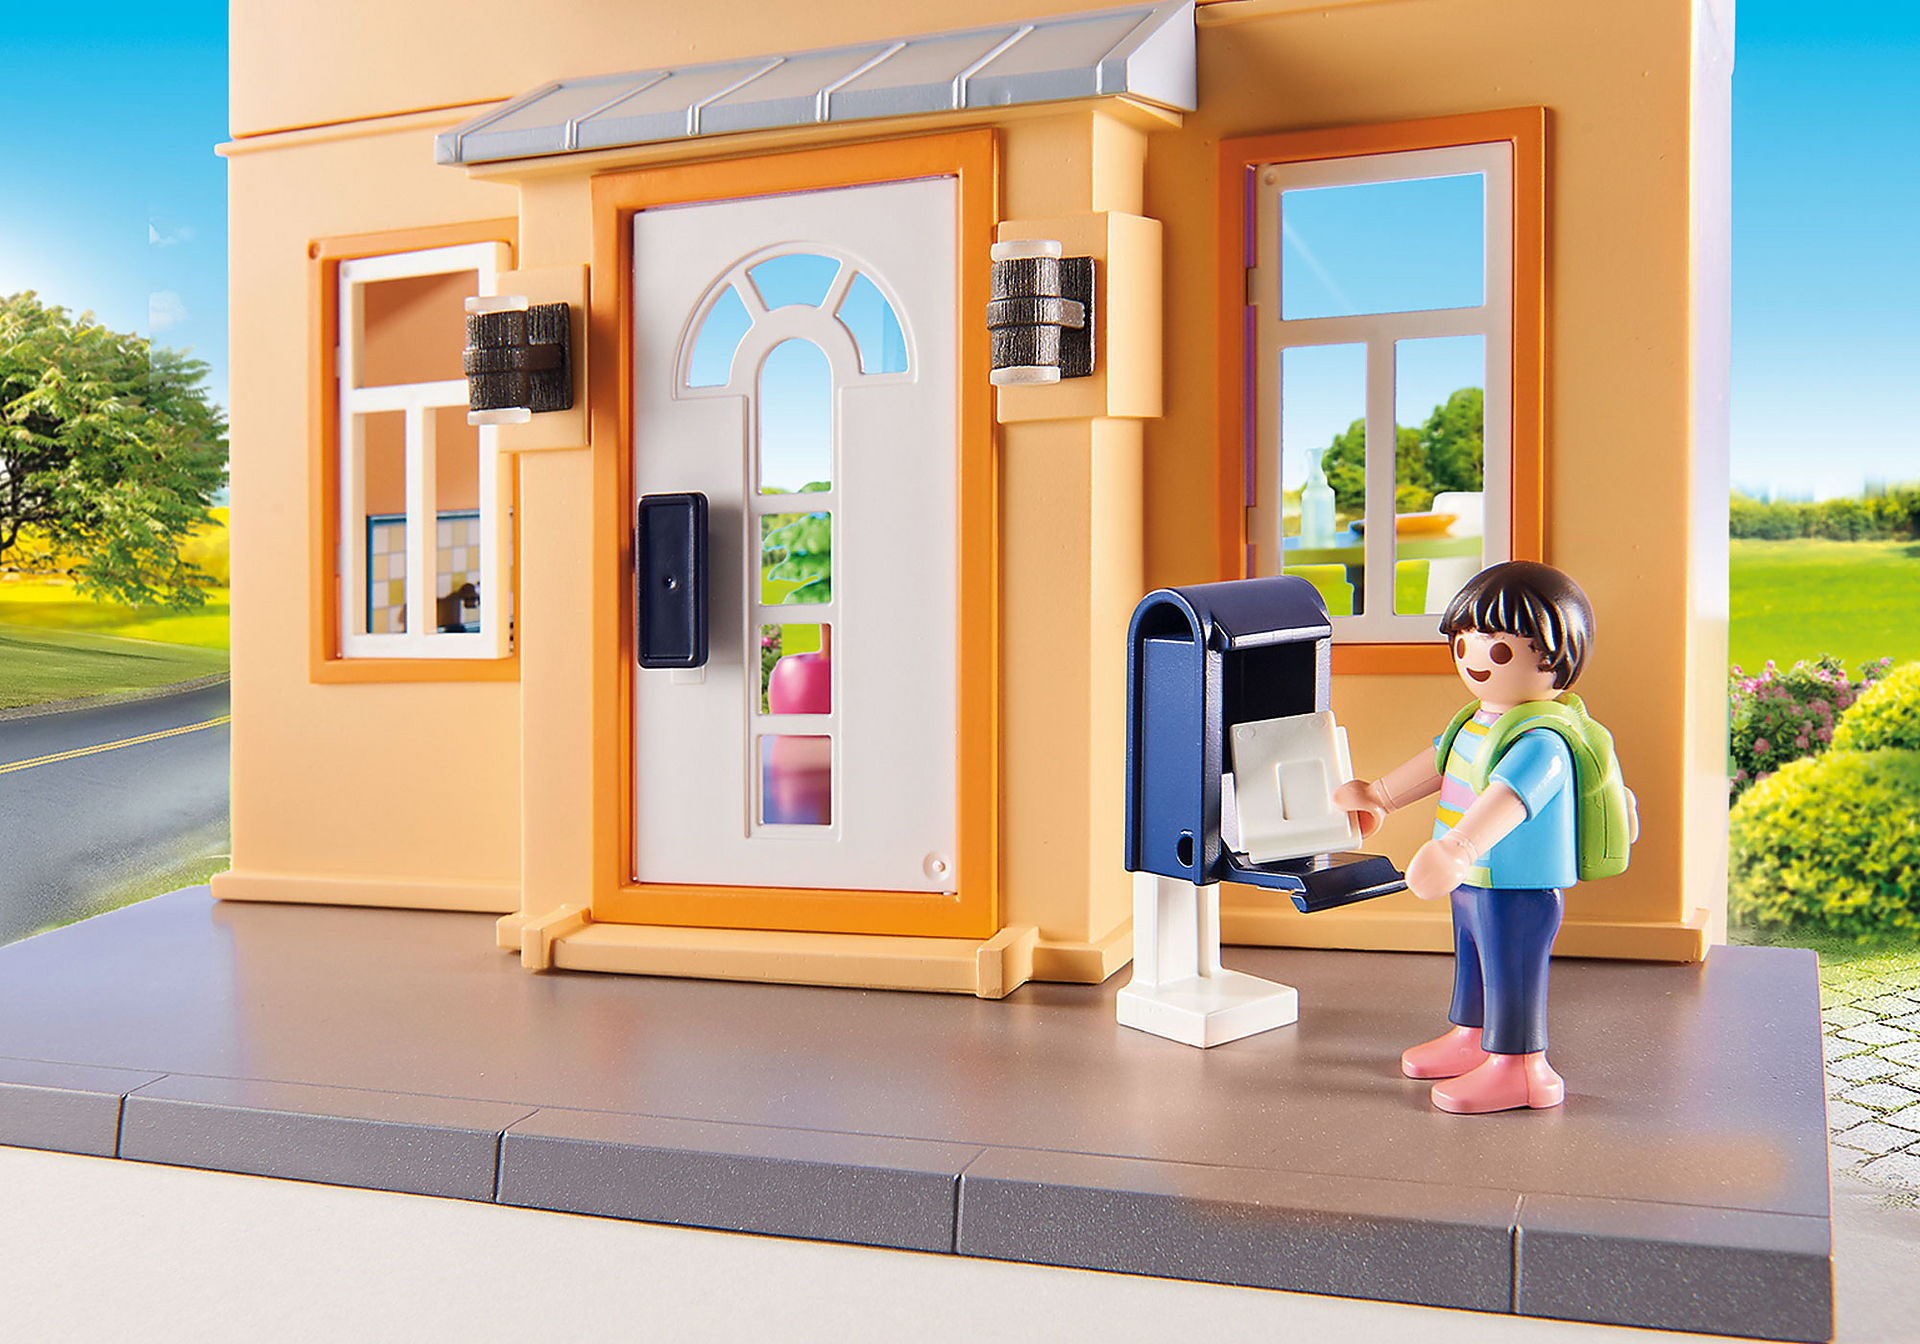 http://media.playmobil.com/i/playmobil/70014_product_extra2/Mein Stadthaus